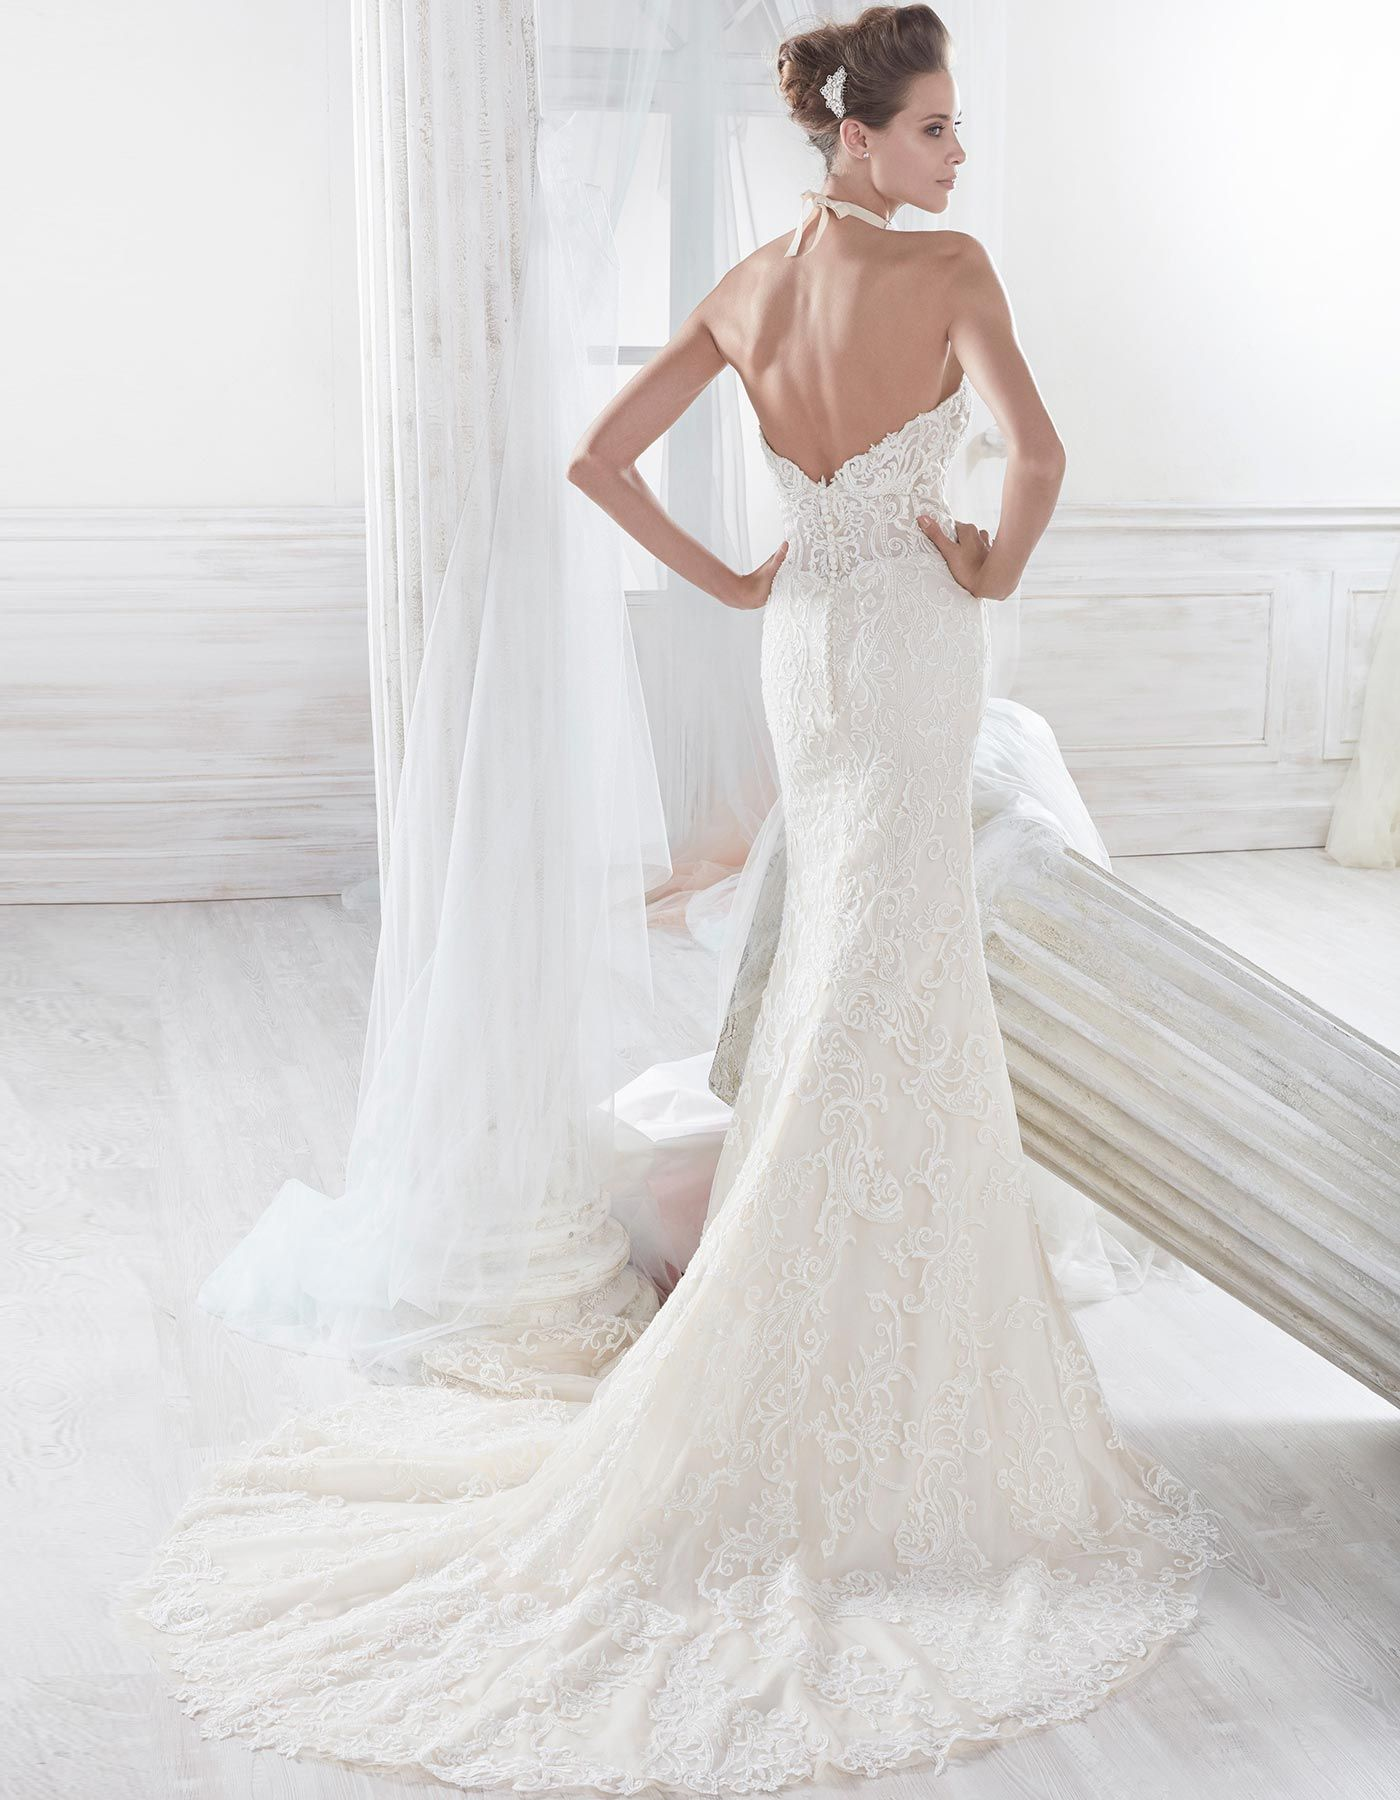 Strapless beaded lace wedding dress | 18069 by Nicole Spose | Ripley ...